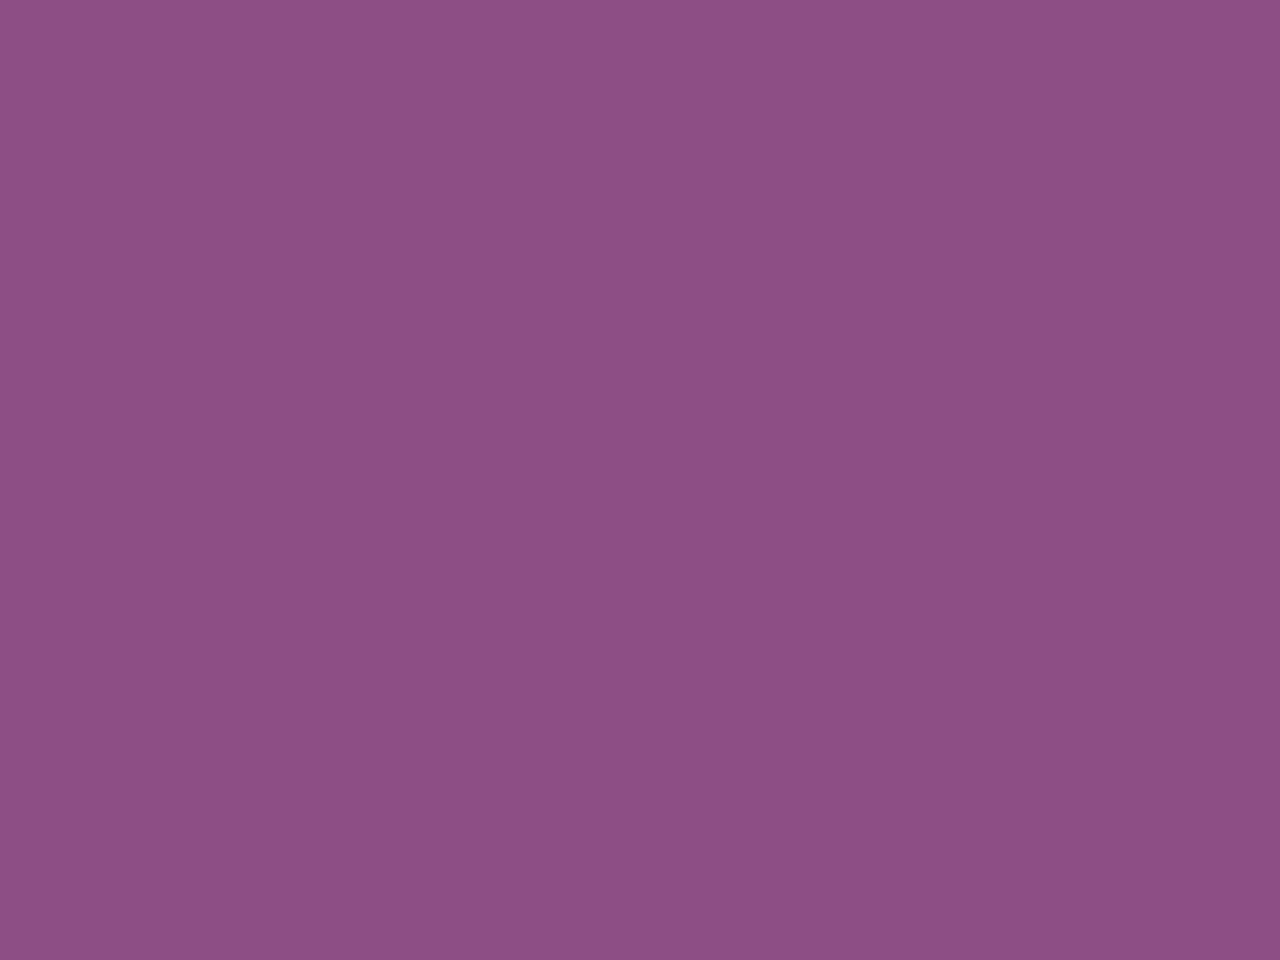 1280x960 Razzmic Berry Solid Color Background